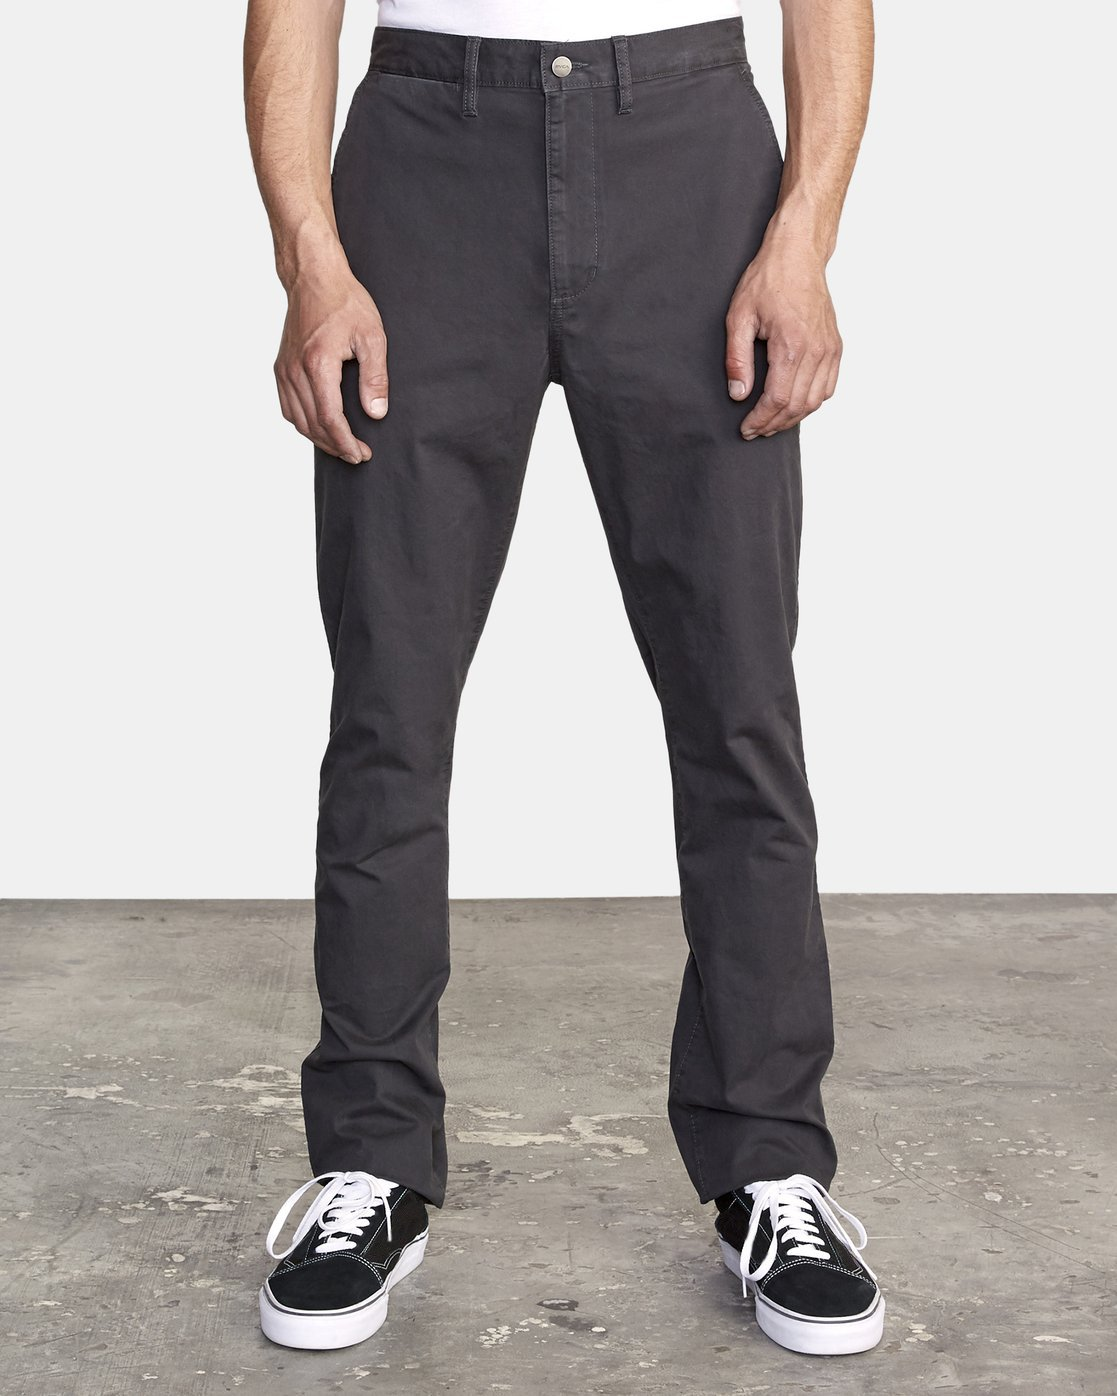 0 DAGGERS SLIM-STRAIGHT CHINO PANTS Orange M309QRDC RVCA